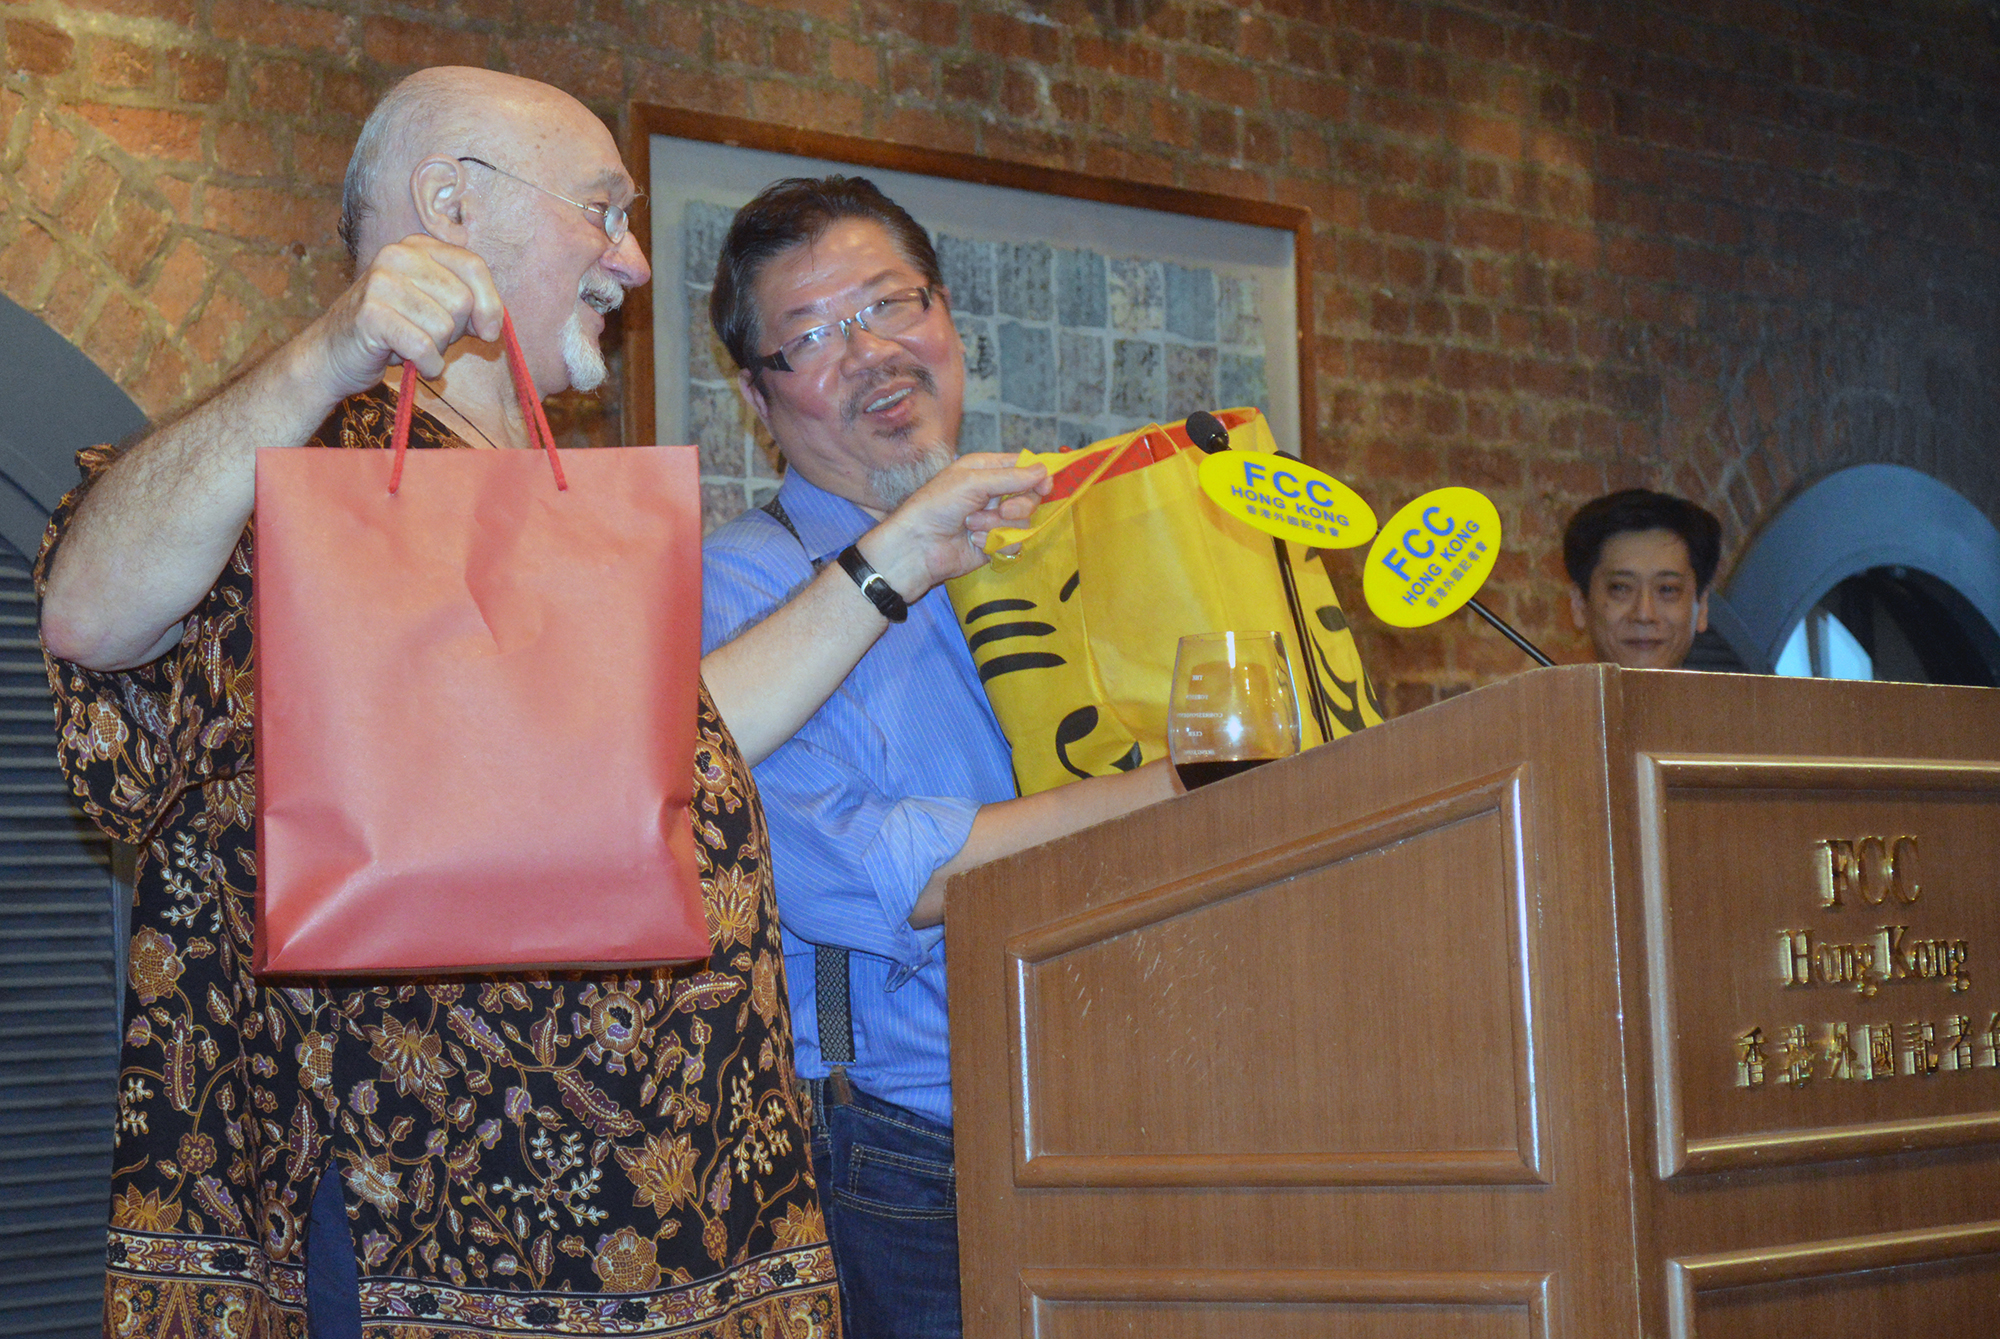 Gilbert Cheng accepts a gift. Photo: Sarah Graham/FCC